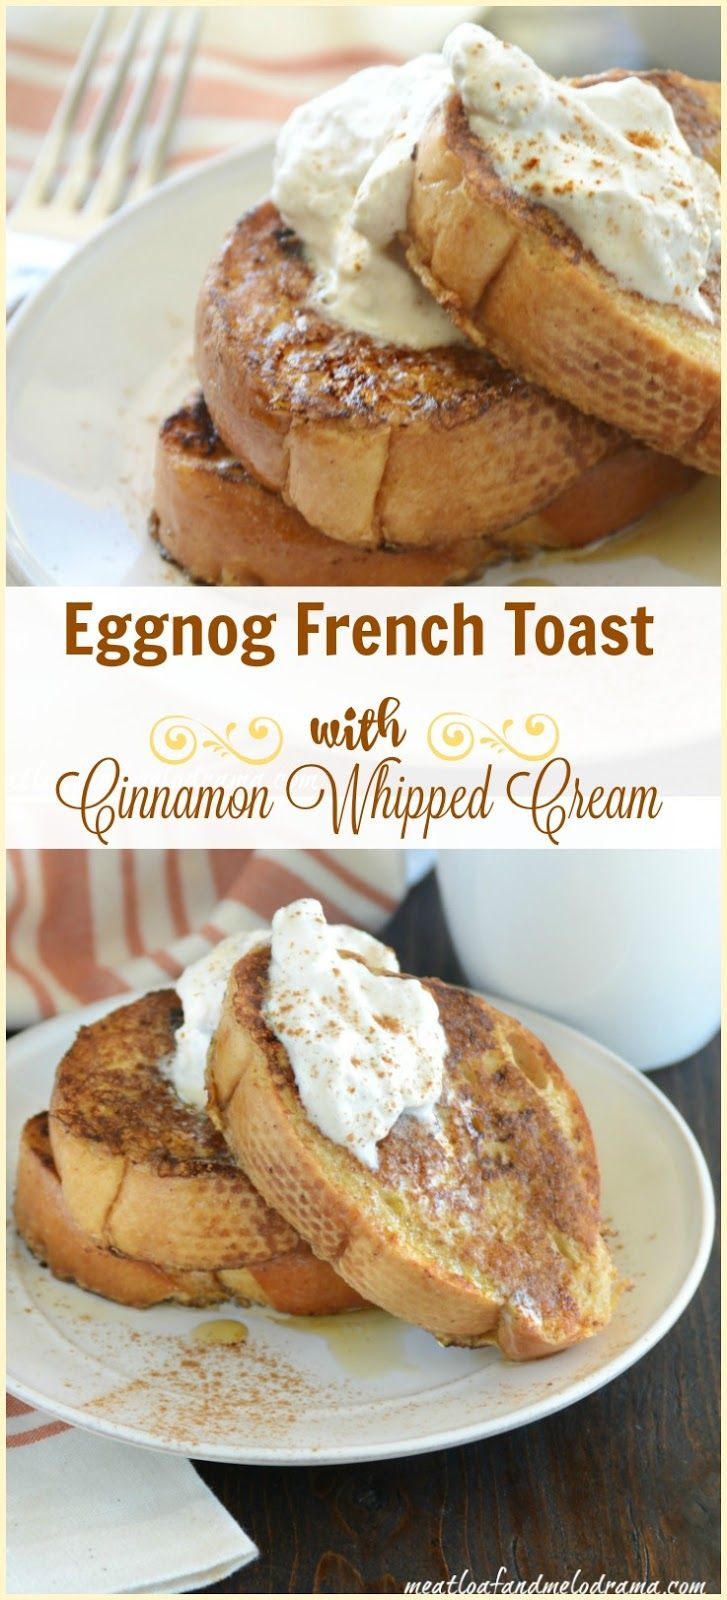 Eggnog French Toast with Cinnamon Whipped Cream. Perfect for Christmas or holiday breakfasts or brunch!